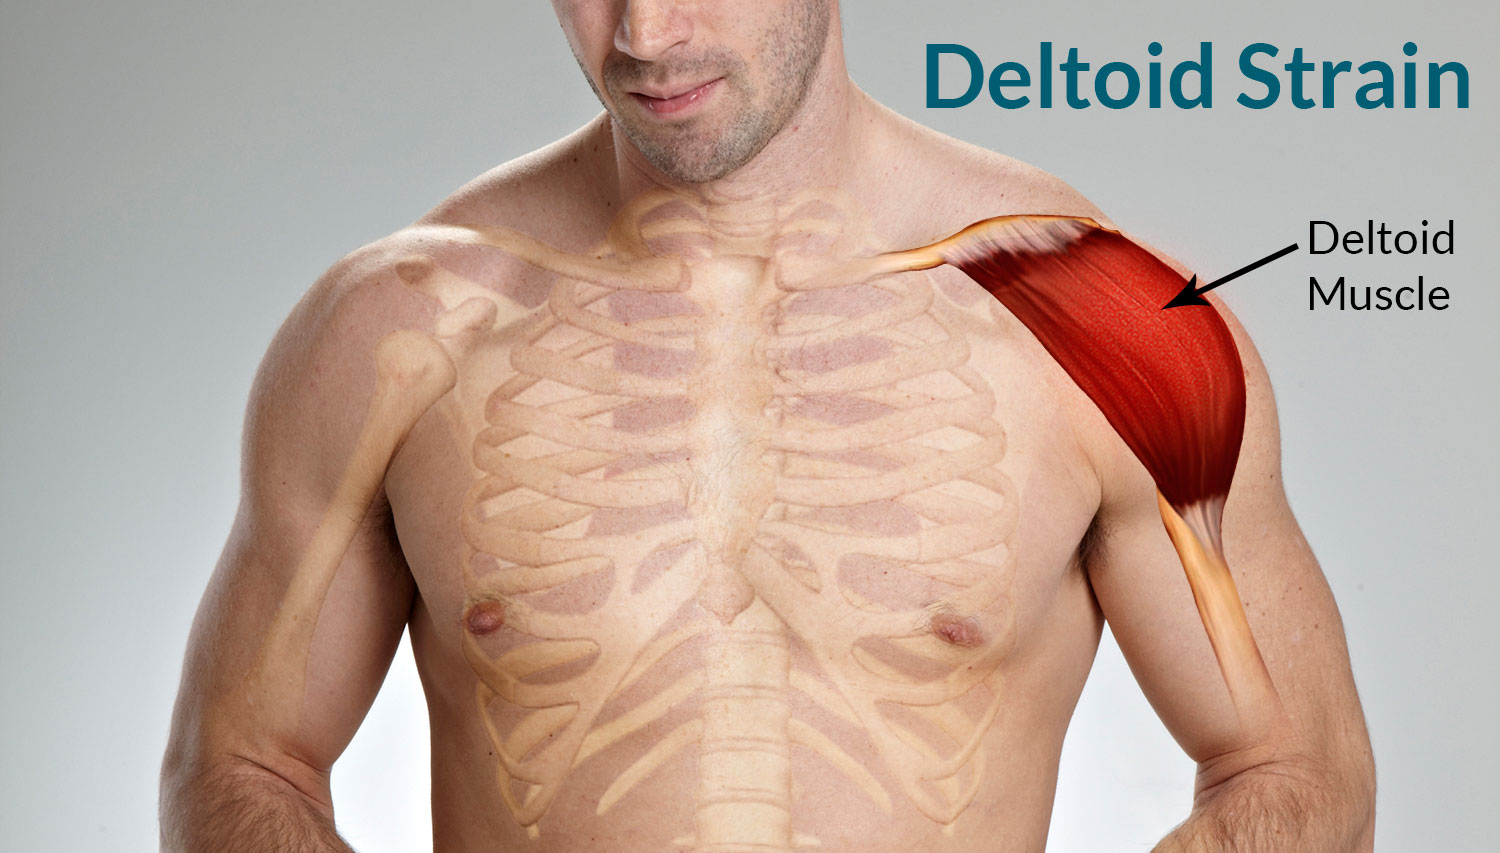 Deltoid Strain Treatment Causes Symptoms Classification